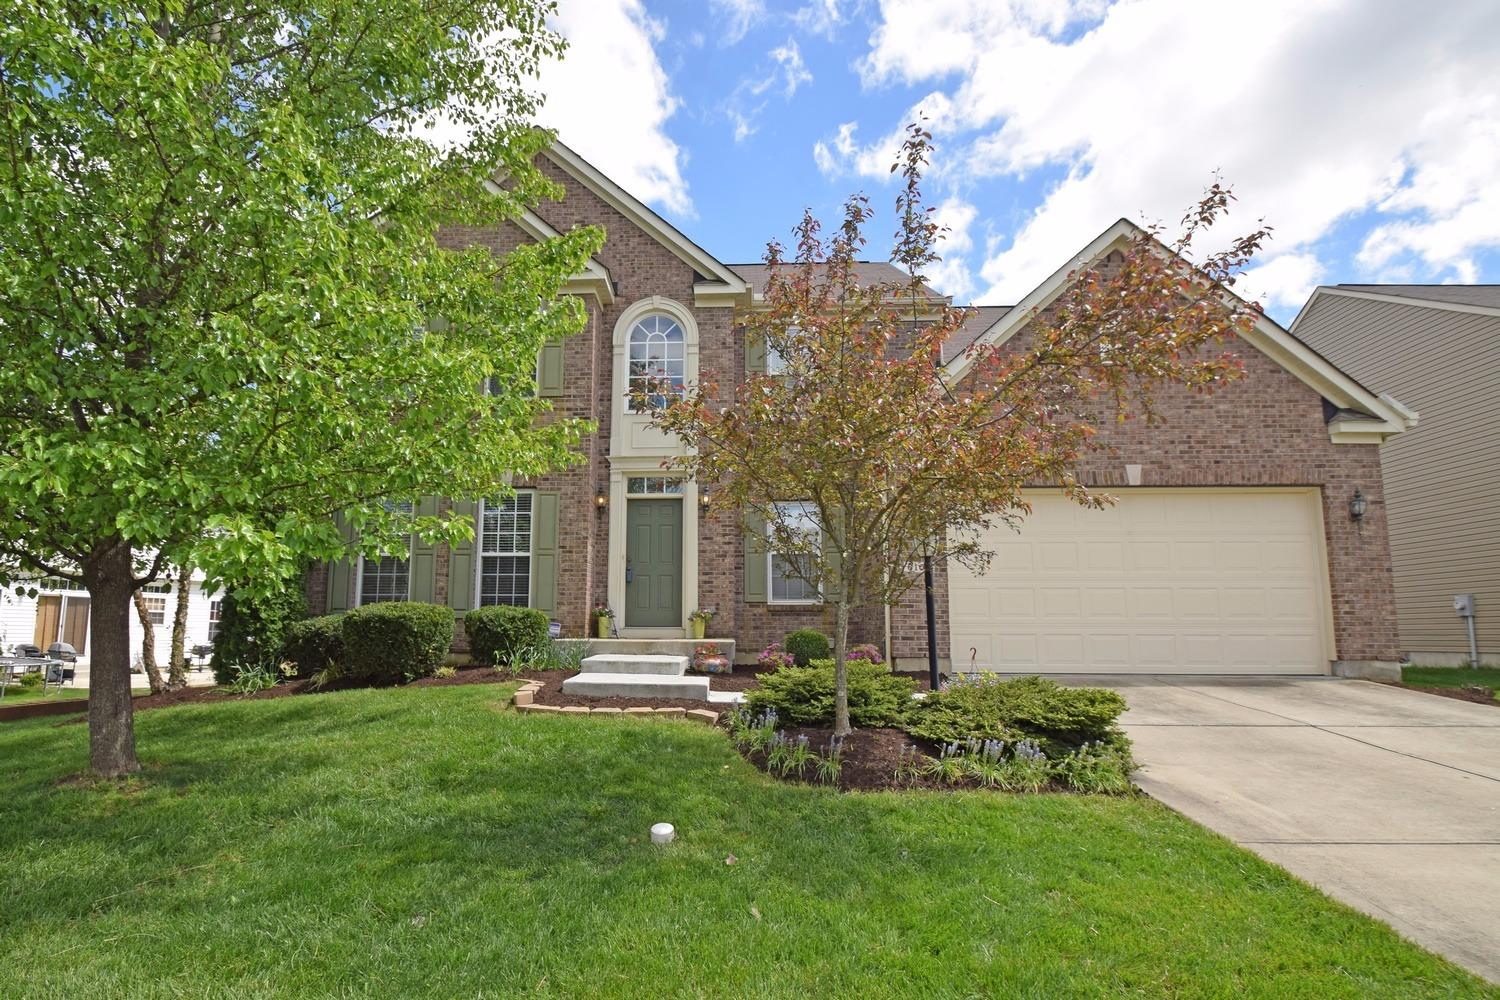 6109 Southern Hills Drive, Goshen Twp, OH 45122